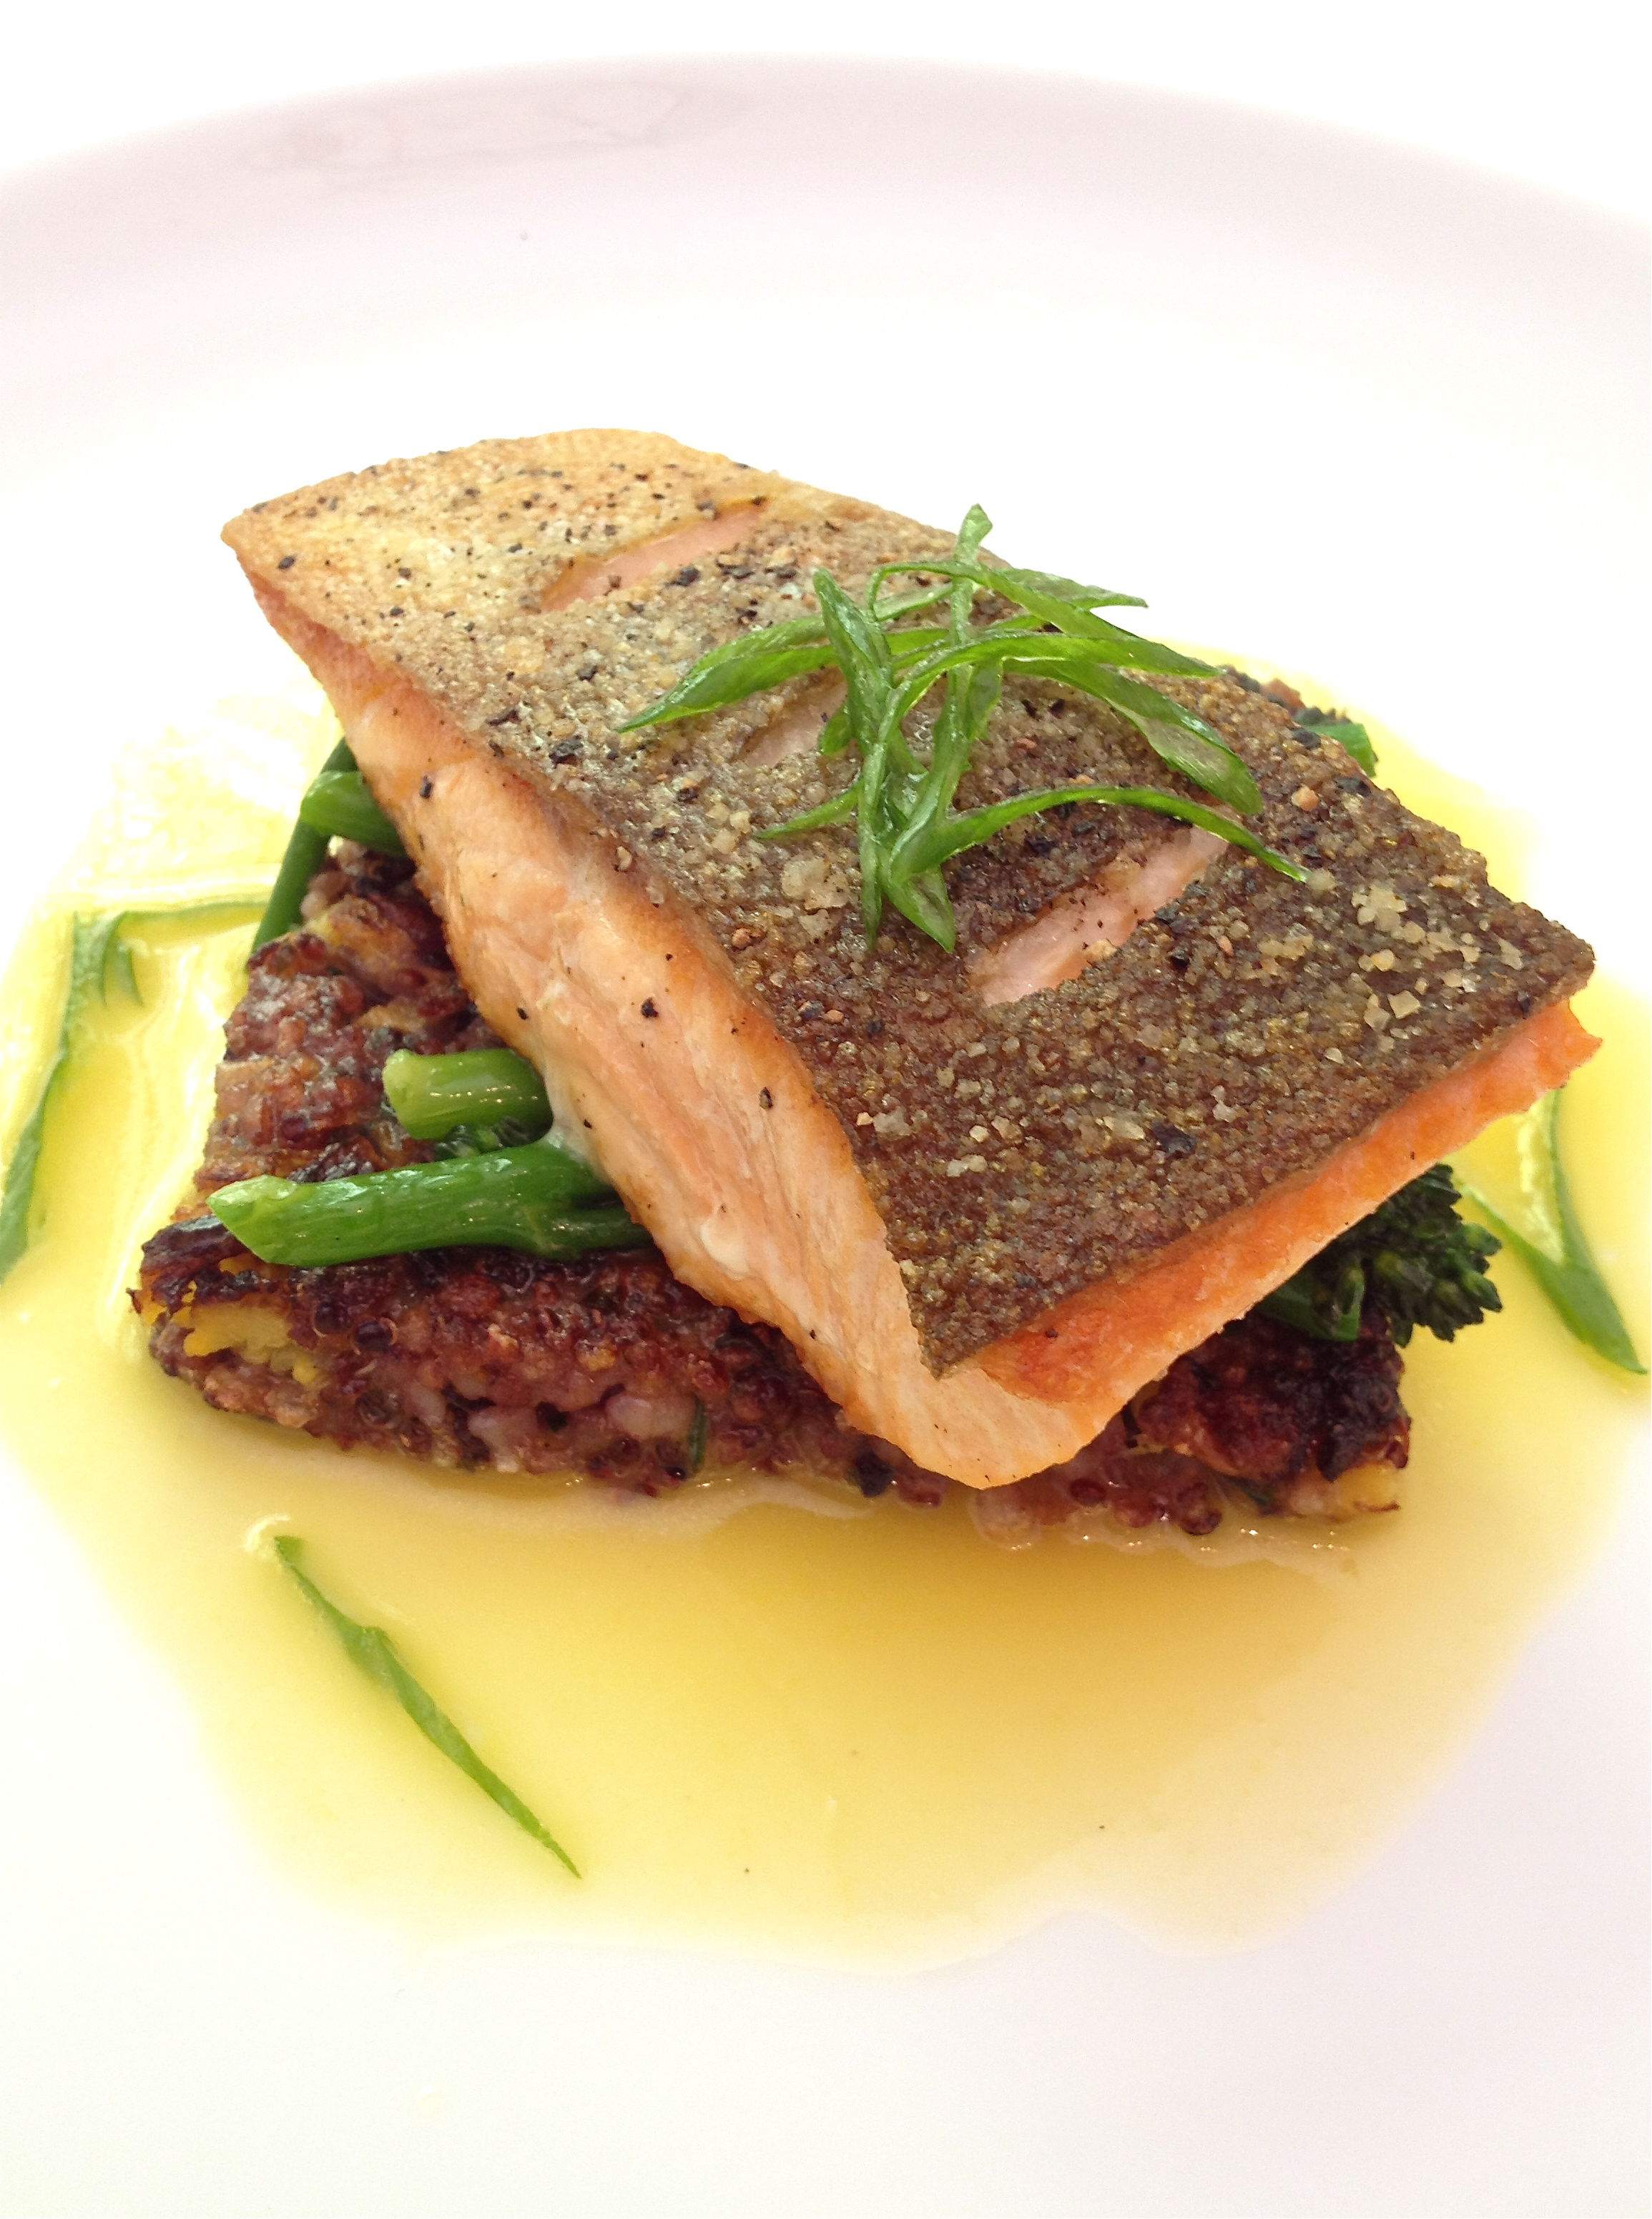 Delish Fish Dish Pan Roasted Arctic Char Omnivorous